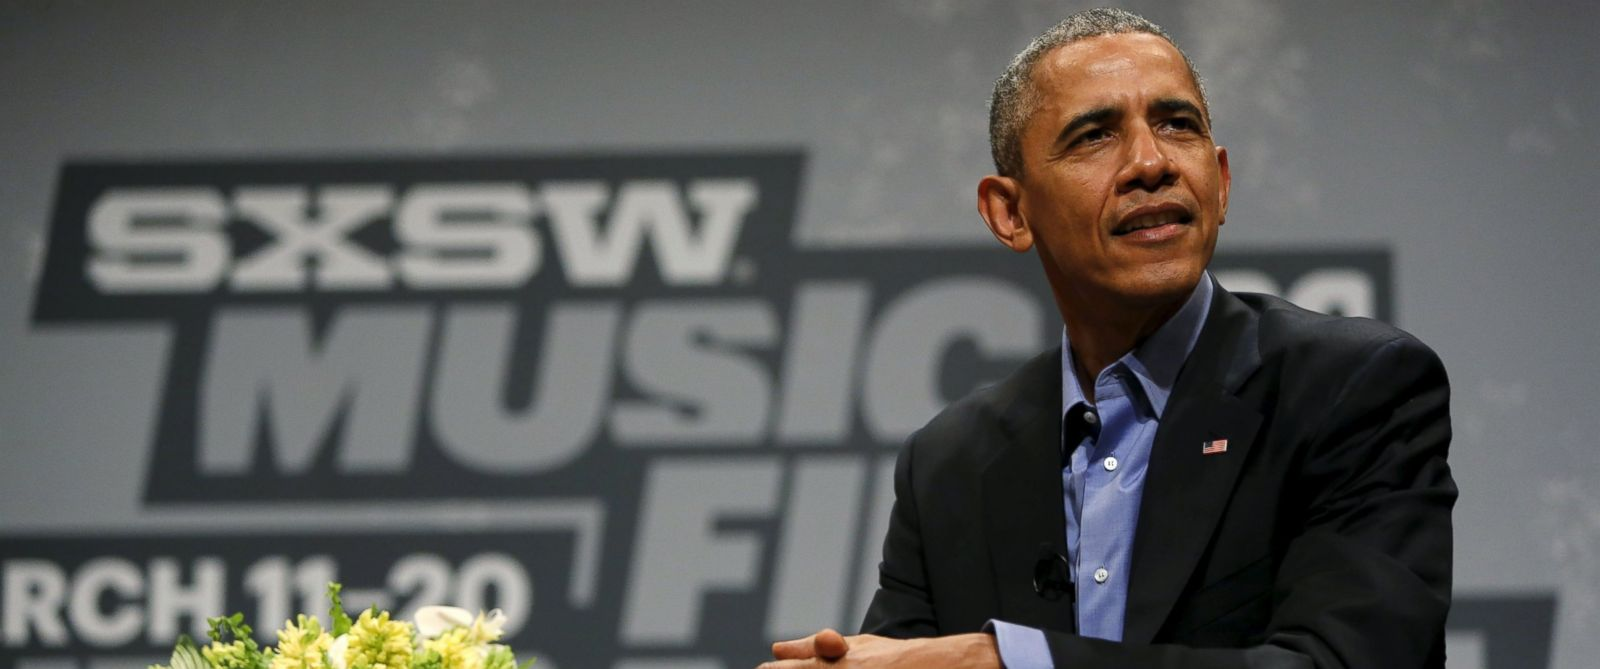 PHOTO: U.S. President Barack Obama participates in an onstage interview at the South by Southwest Interactive in Austin, Texas, March 11, 2016.